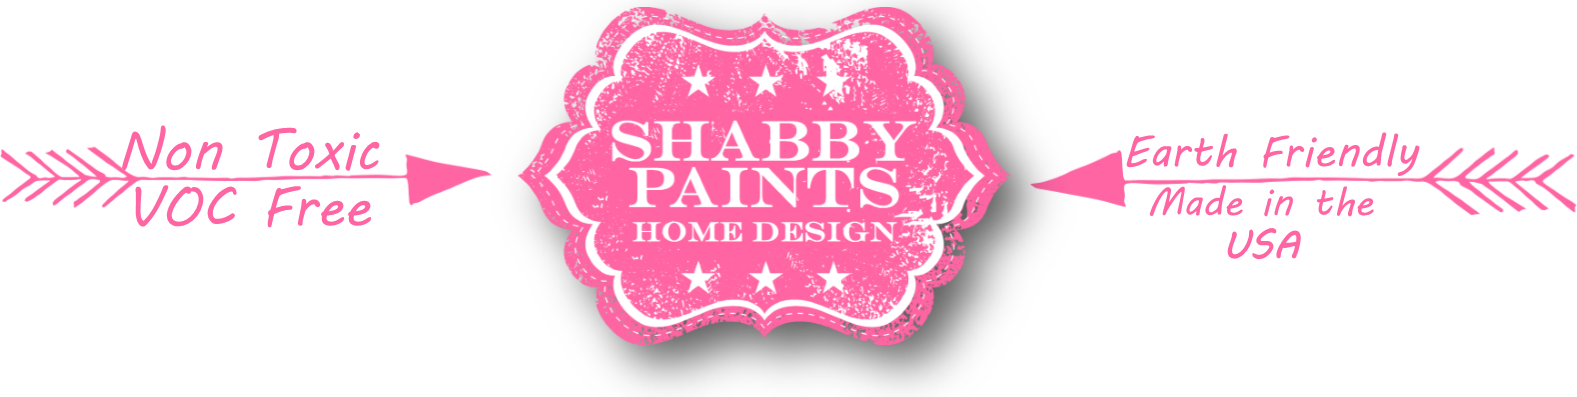 Shabby Paints